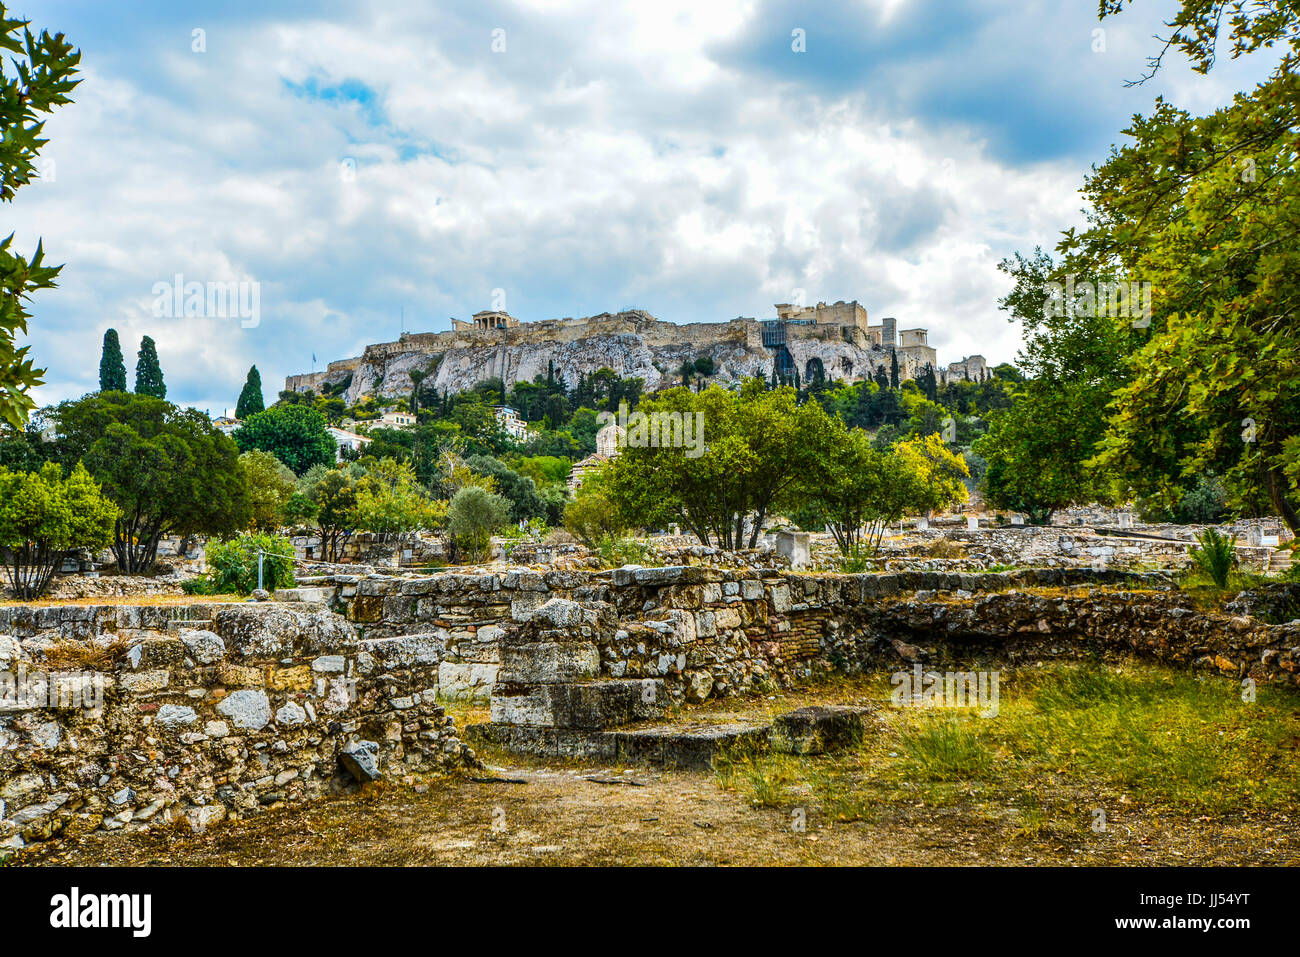 Athens Acropolis Hill. The Parthenon and Acropolis from the agora below in Athens Greece - Stock Image